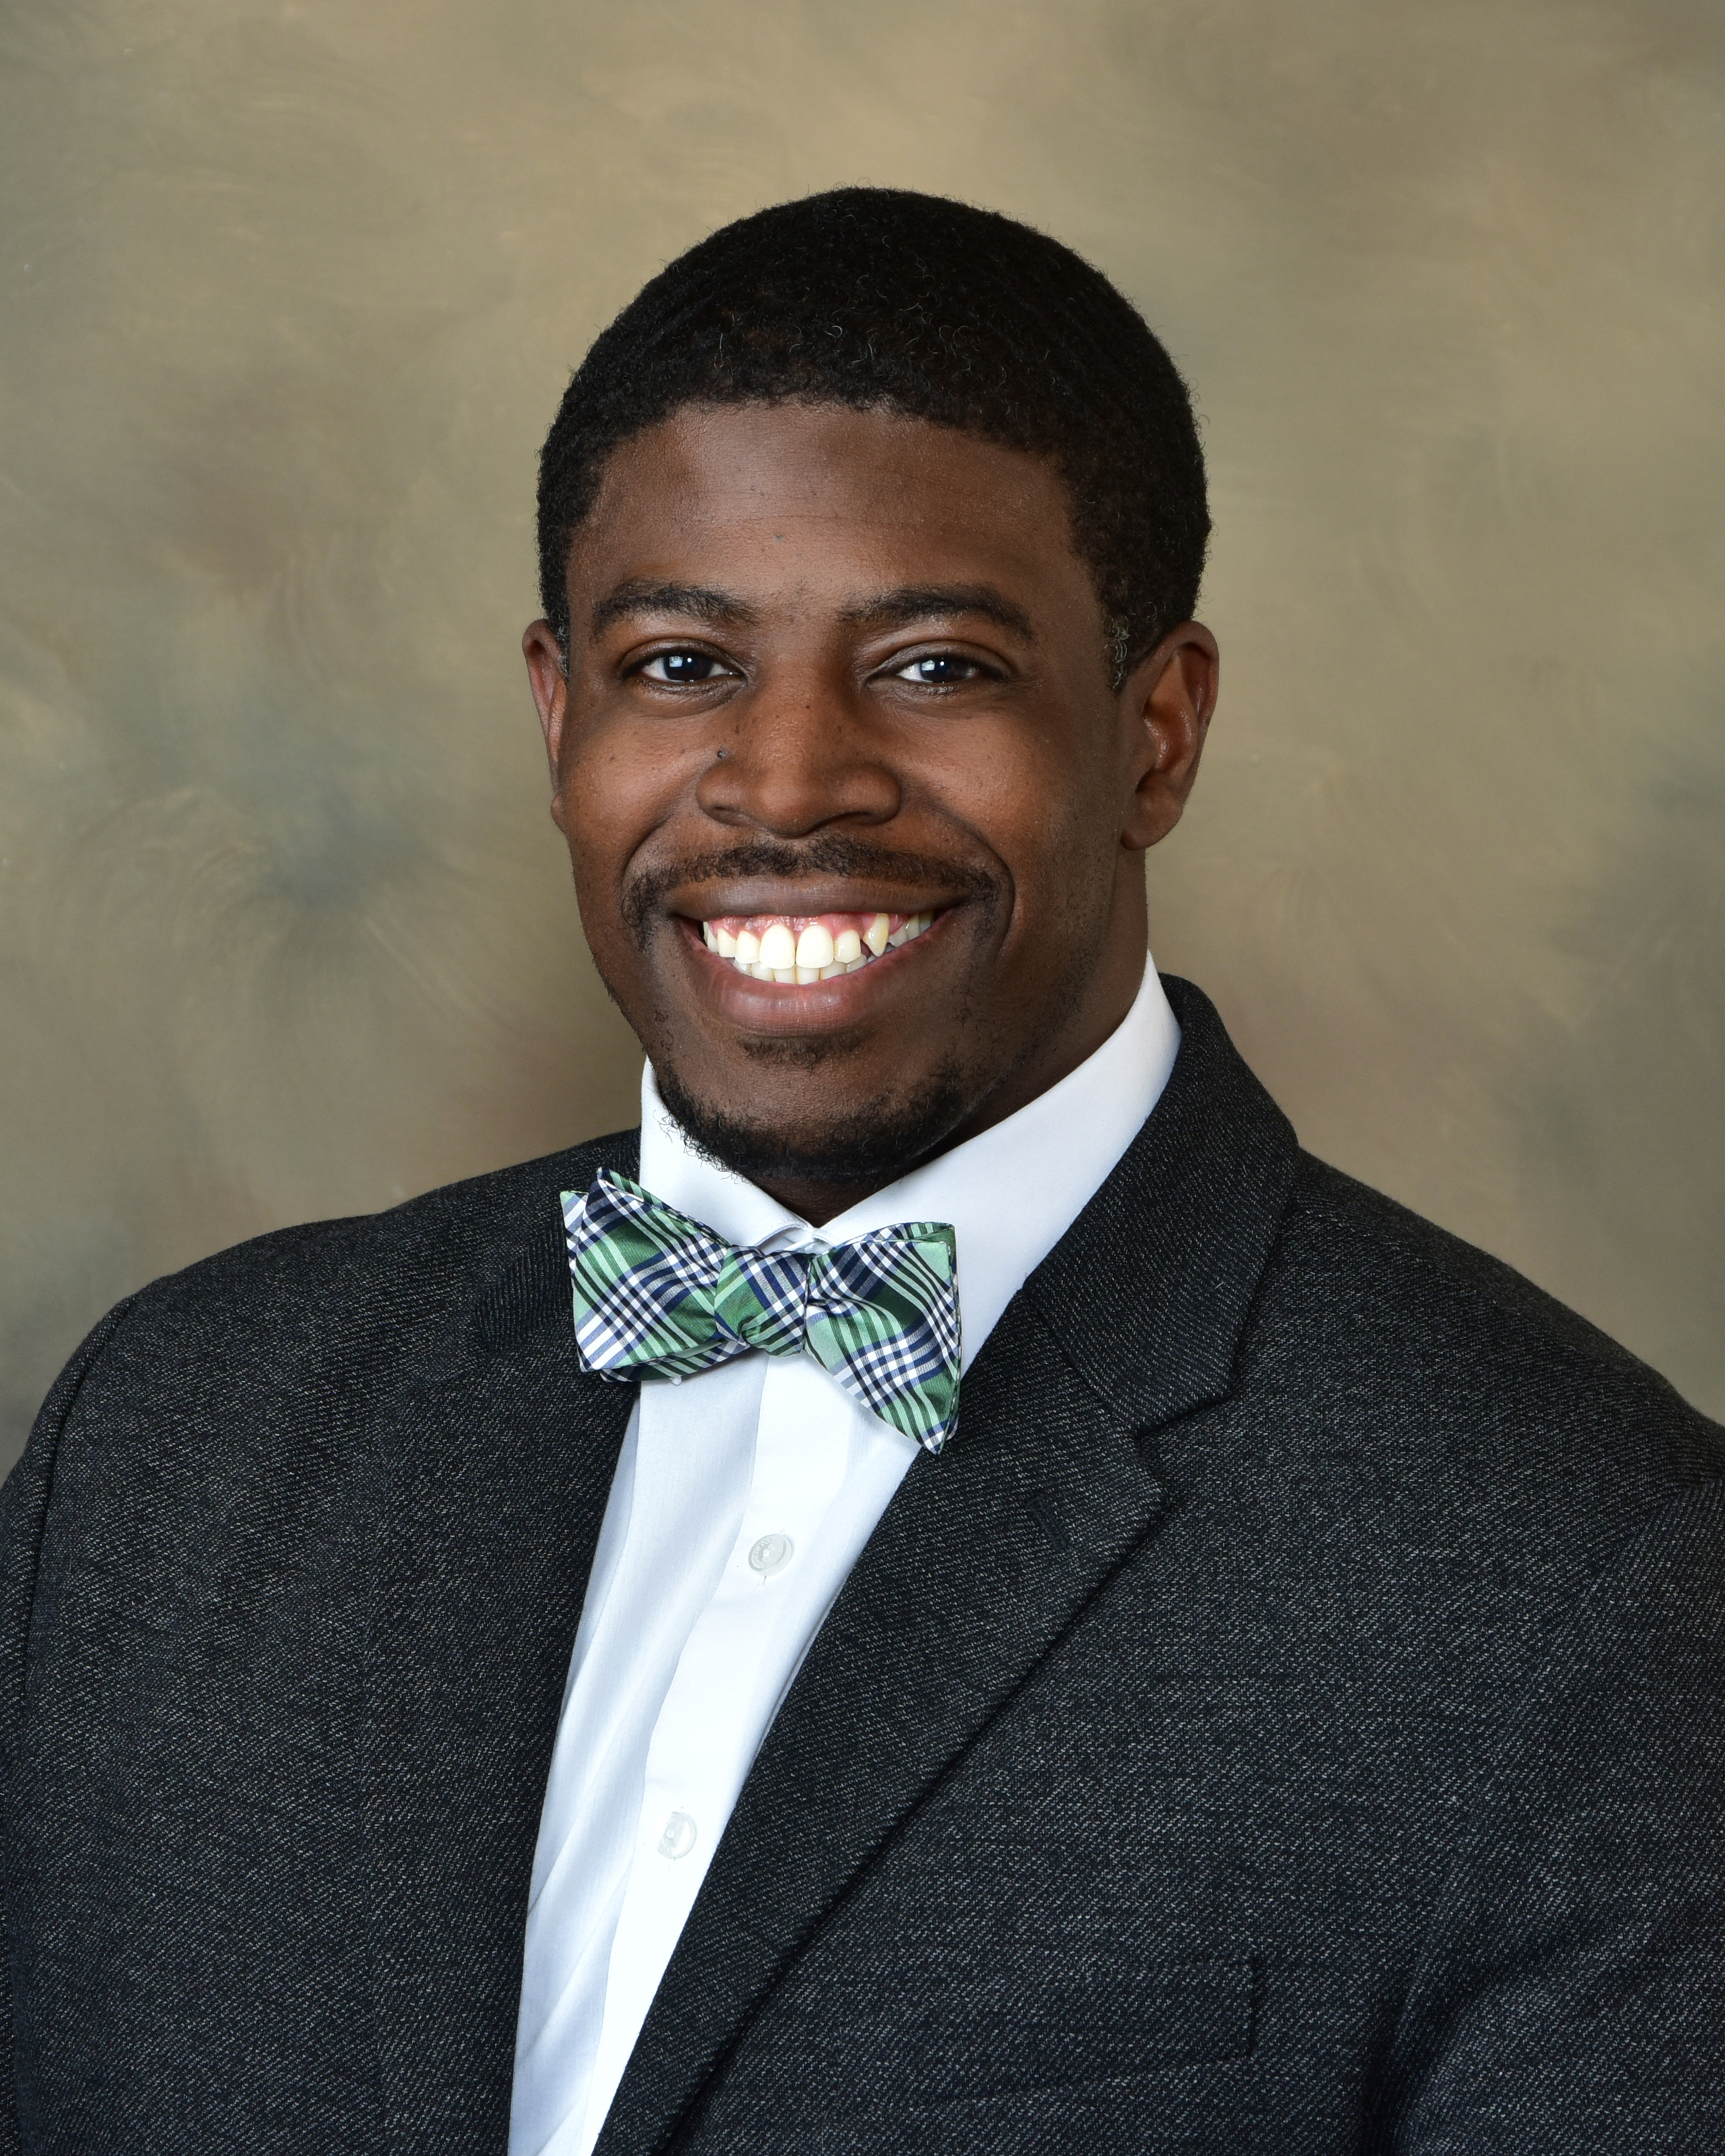 Daryl Grigsby, Jr. DMD, MS